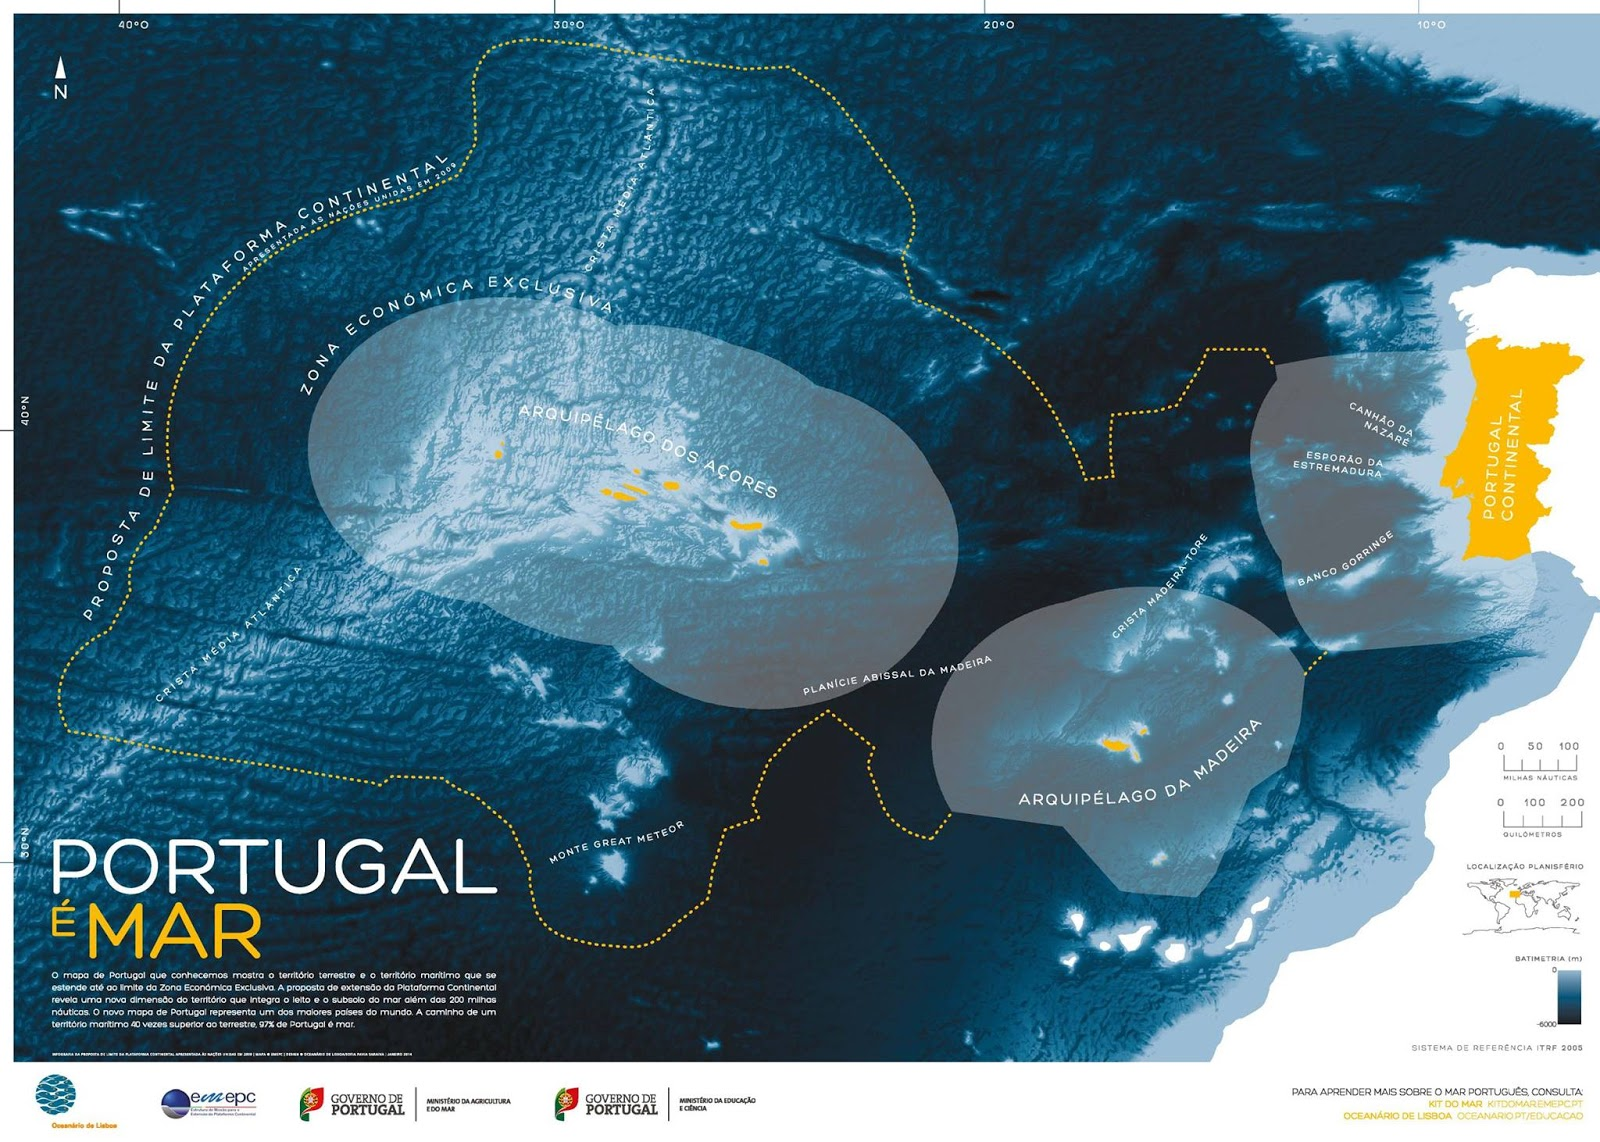 """Portugal Is Sea"" - Official Portuguese map with a proposed extension to Portugal's EEZ"